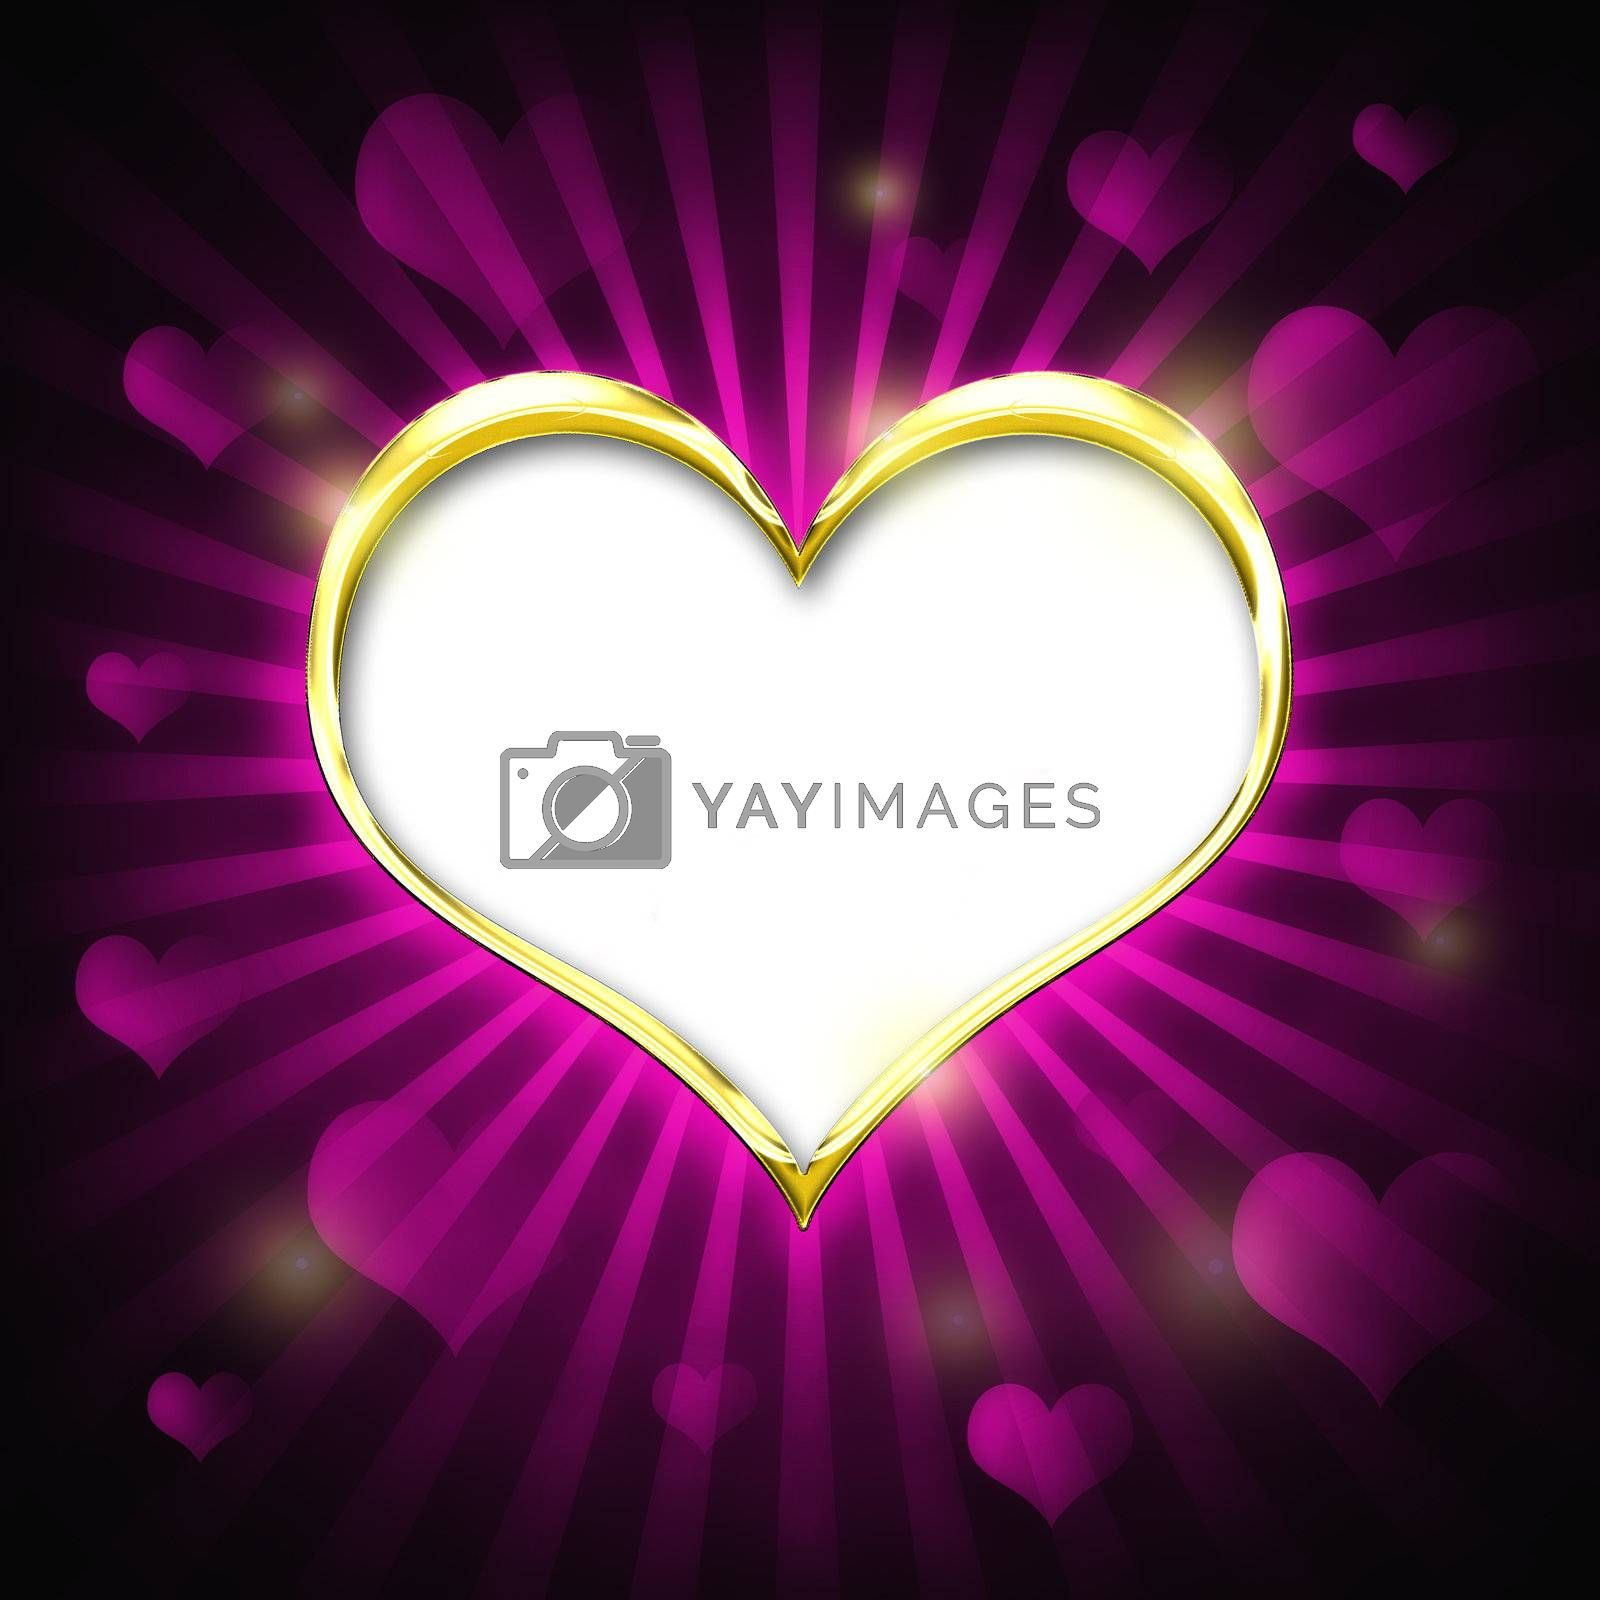 Valenties Day Card with a big golden heart and many smaller hearts on a pink background